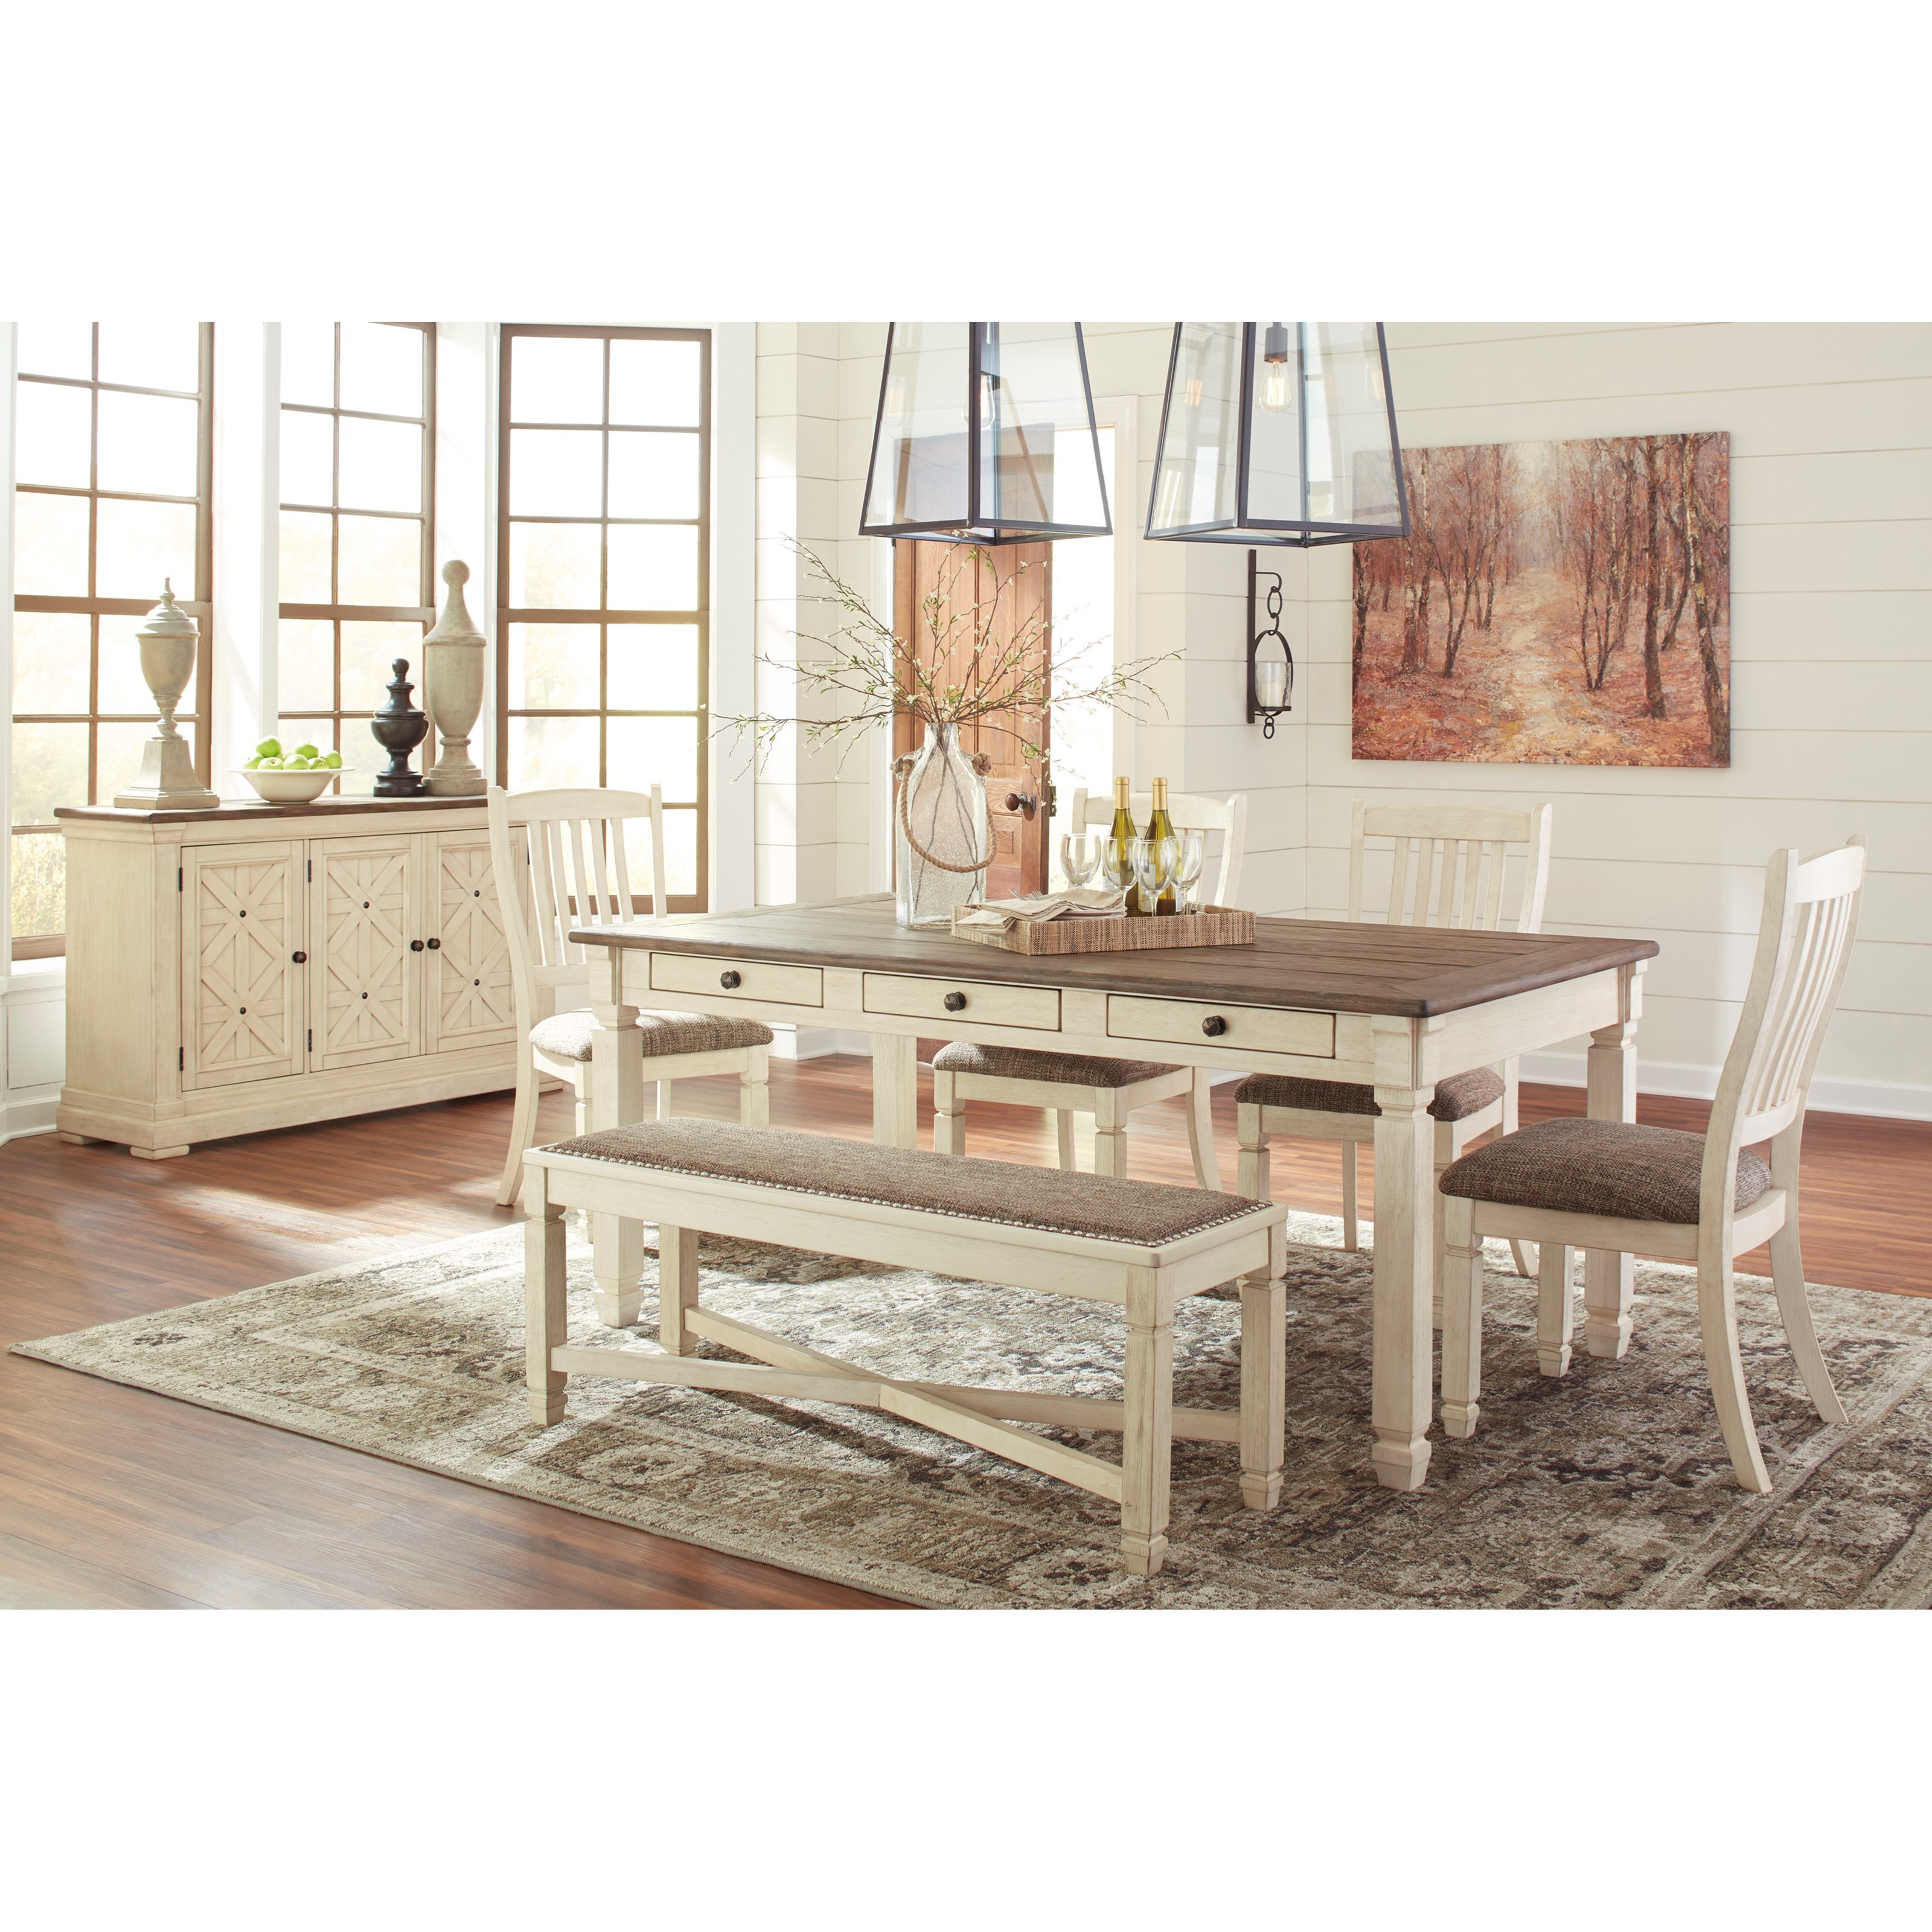 Signature Design by Ashley Bolanburg Casual Dining Room Group - Item Number: D647 Dining Room Group 3